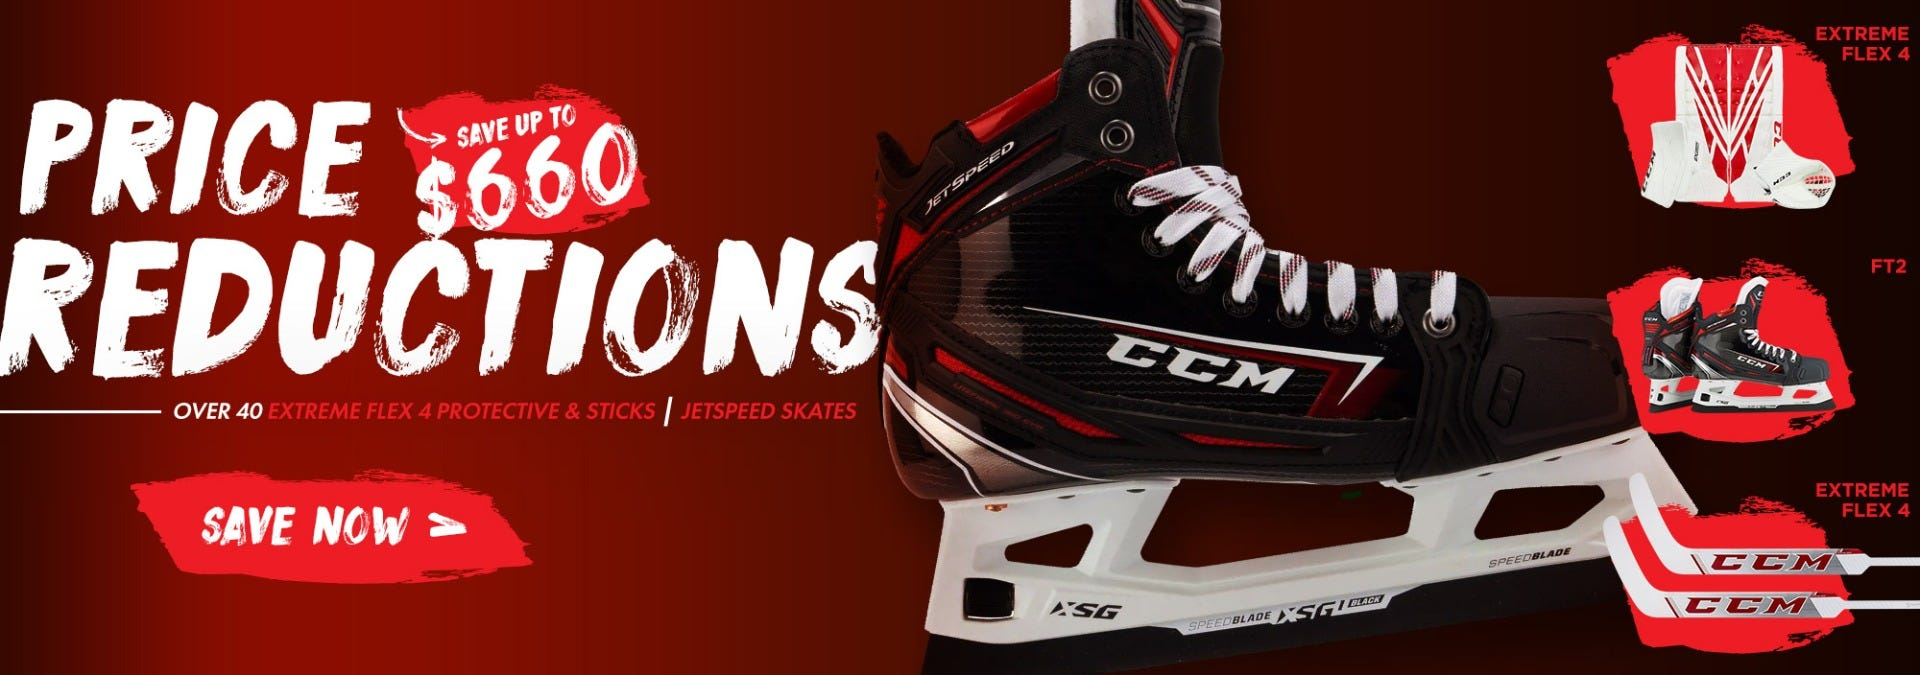 Save up to $660 on over 40 CCM JetSpeed skates and Extreme Flex 4 protective & sticks!